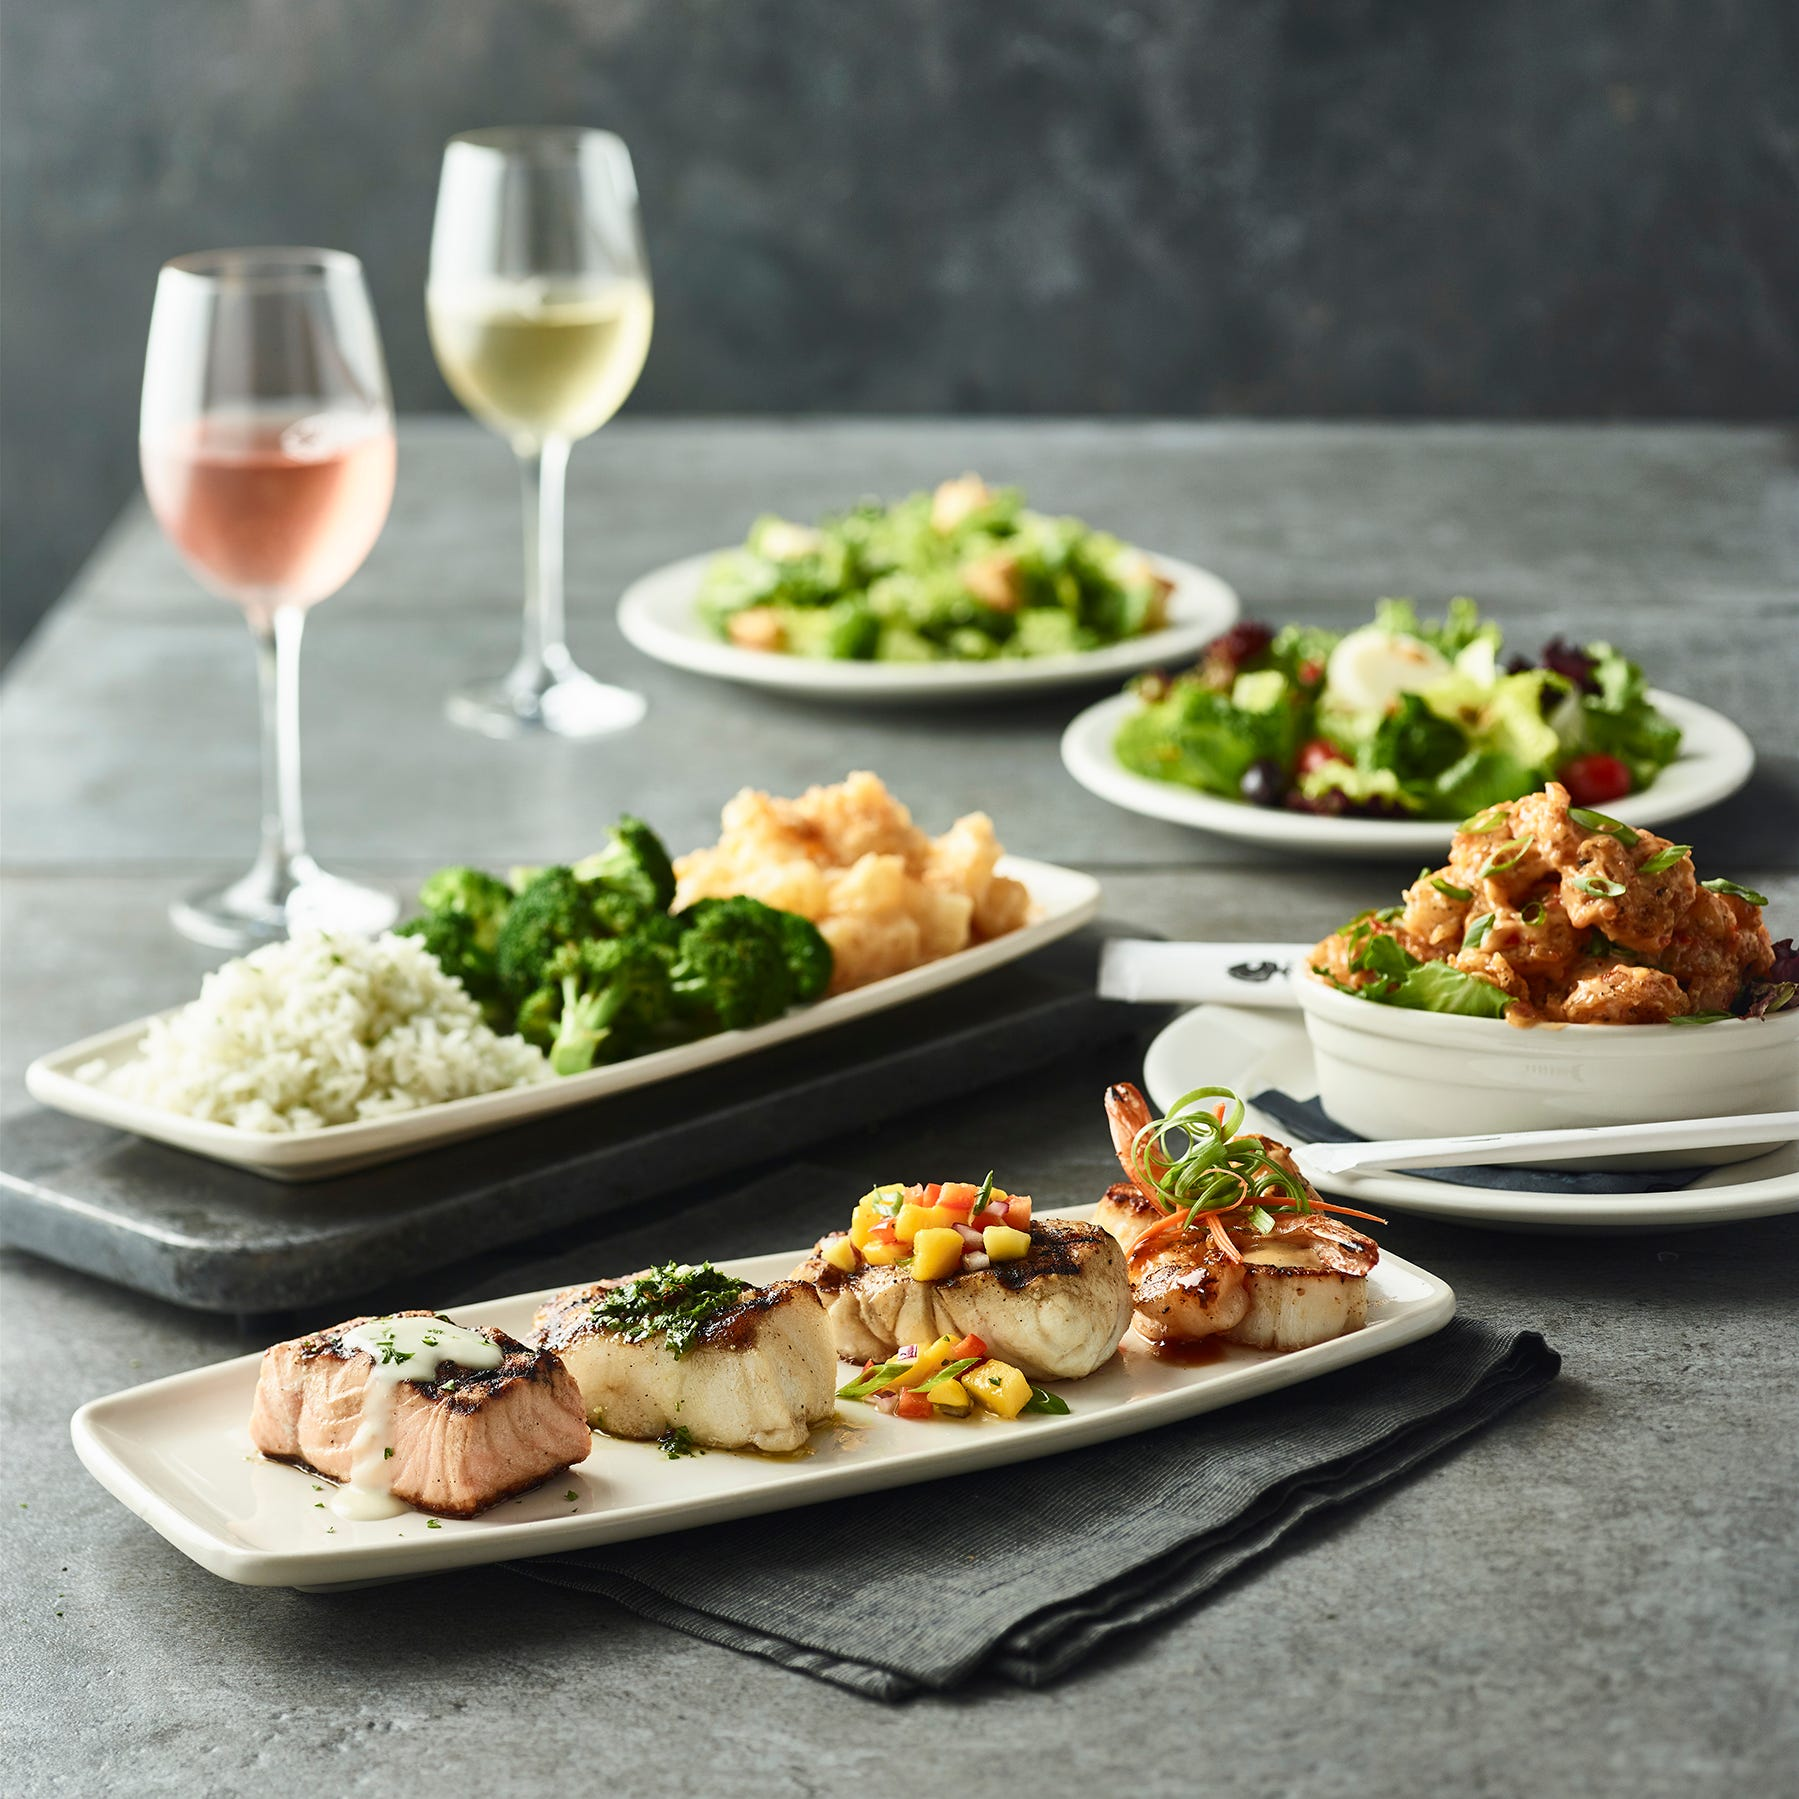 Bonefish Grill serving up 'OMG' dinner for 2 in Sept. | Table Settings